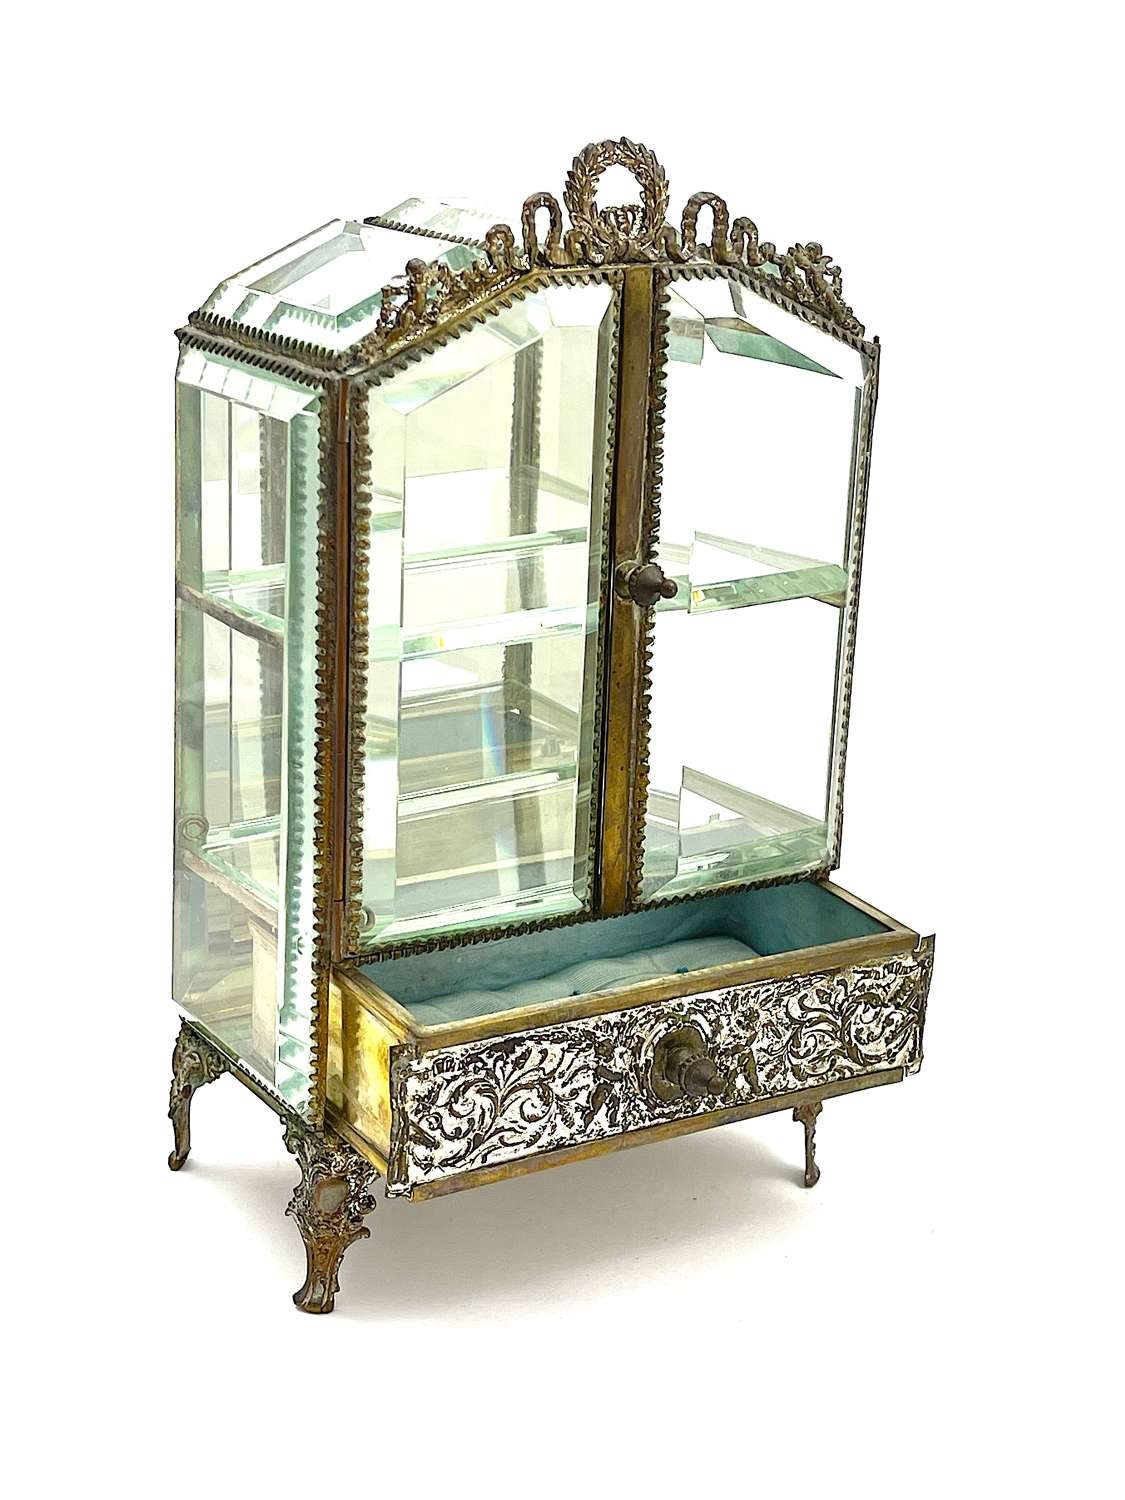 Antique French Vitrine Box with 2 Opening Beveled Glass Doors